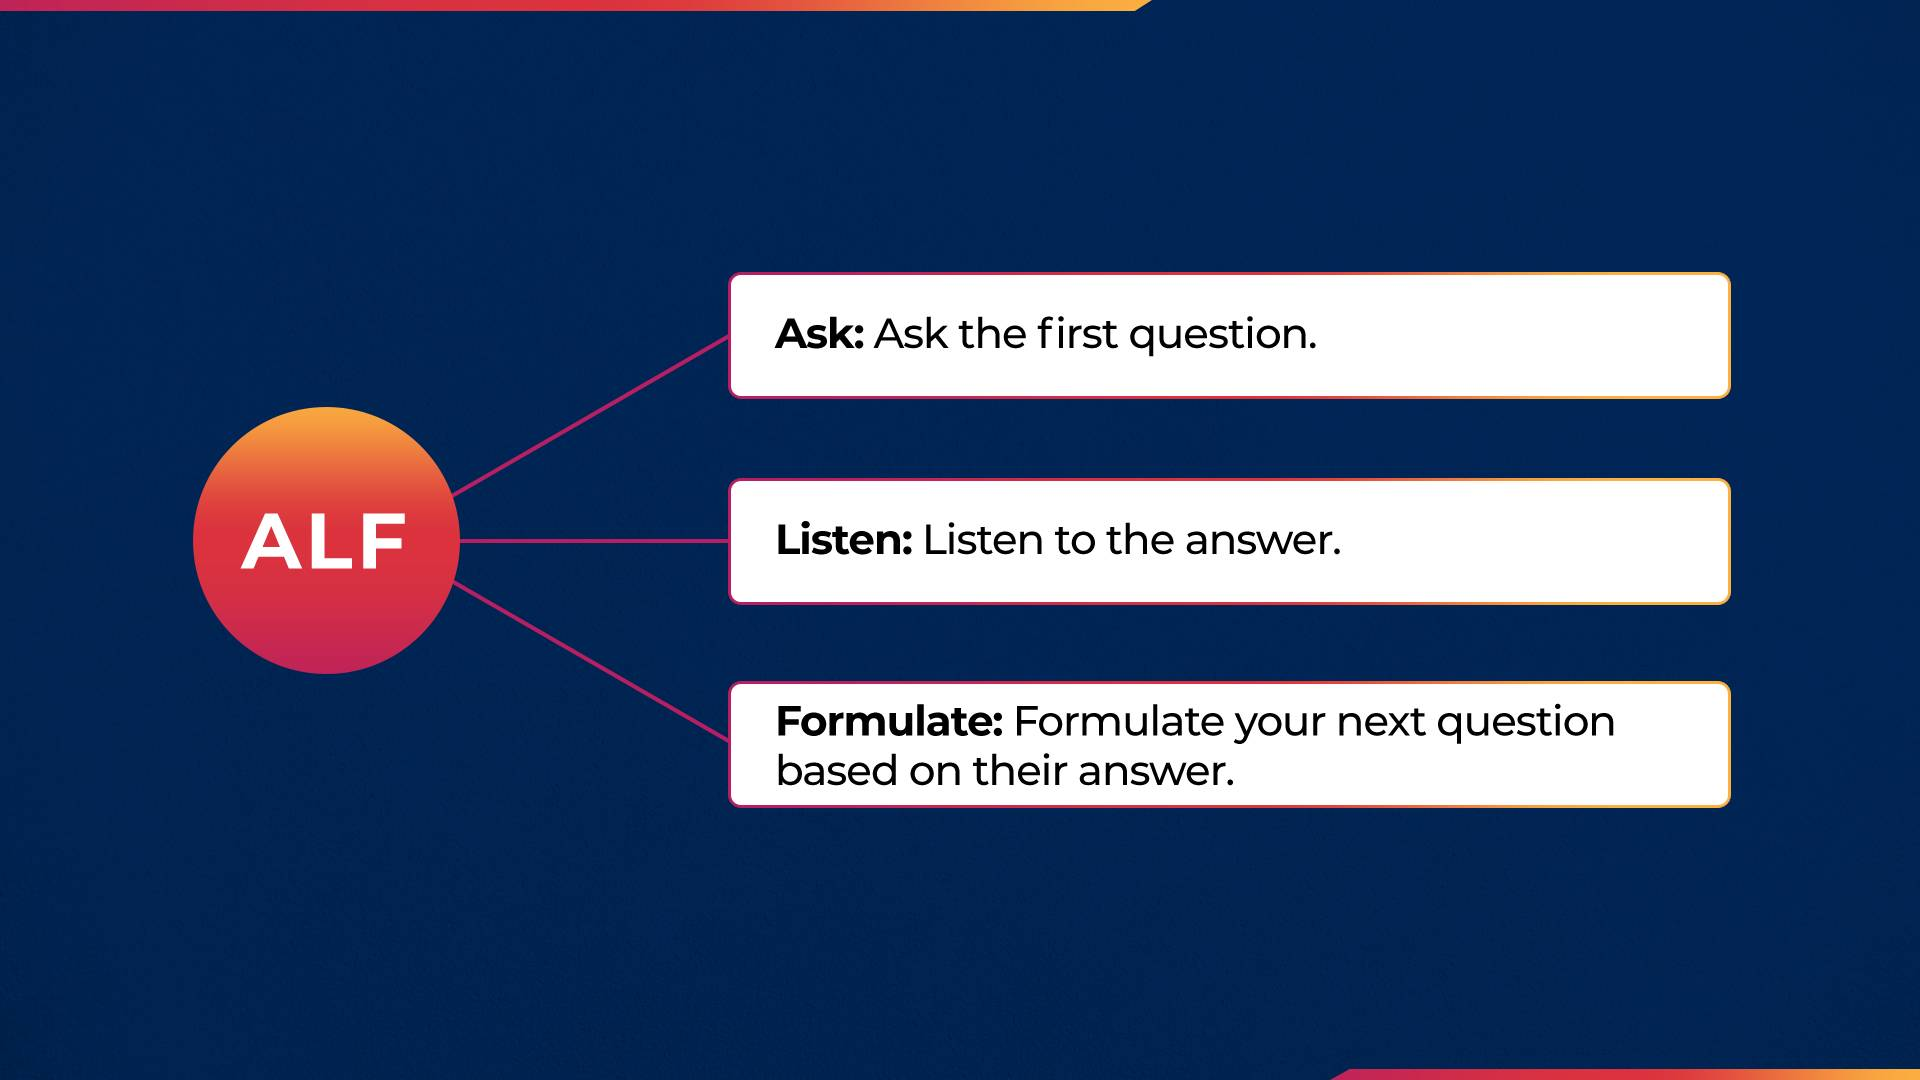 Ask the first question, Listen to the answer, Formulate your next question based on their answer.